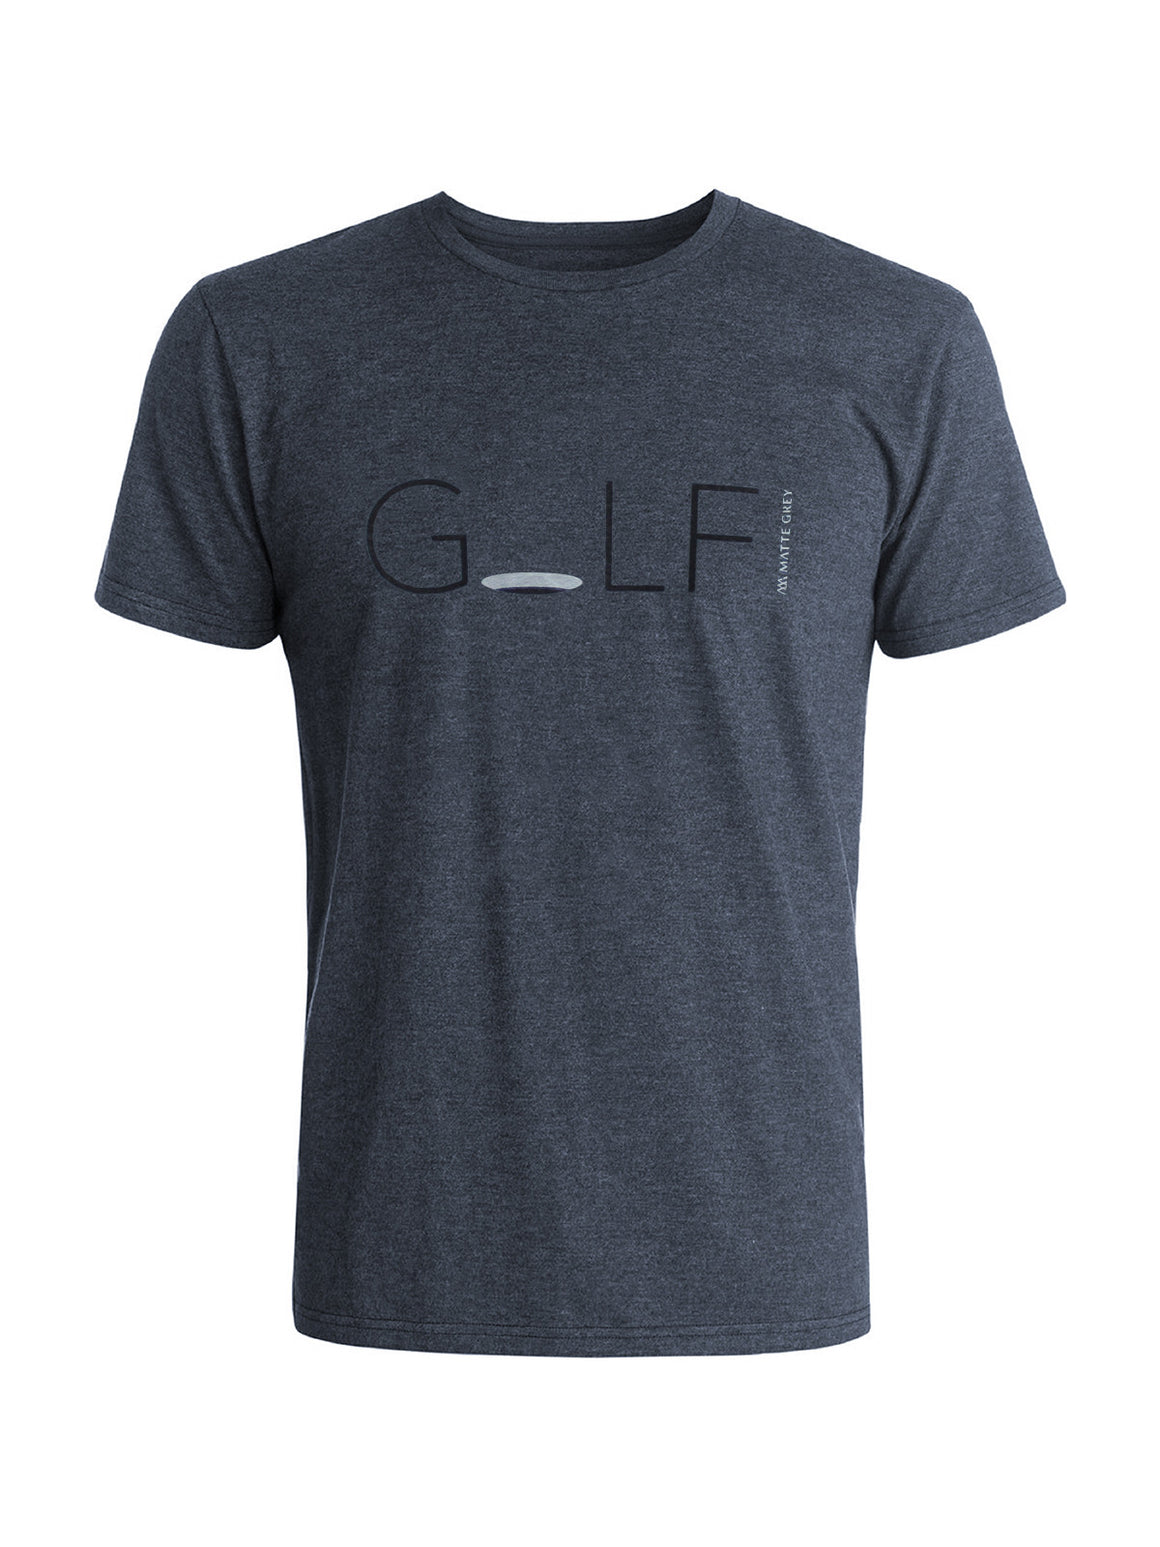 Hole in One Tee Shirt - Navy Heather (Black / Smoke)